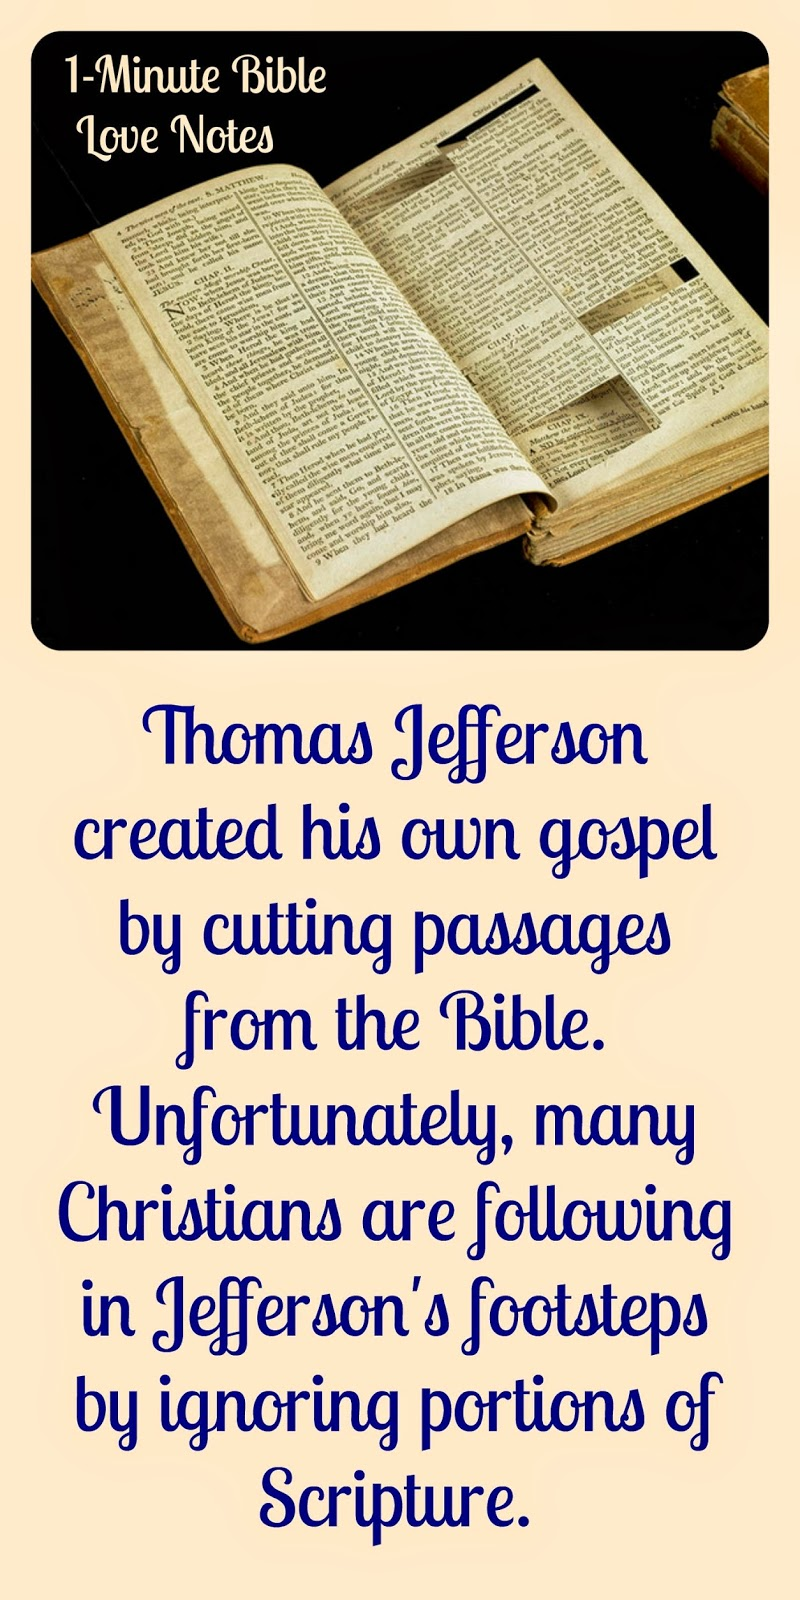 Jefferson's Bible, Diesm, cutting from Bible